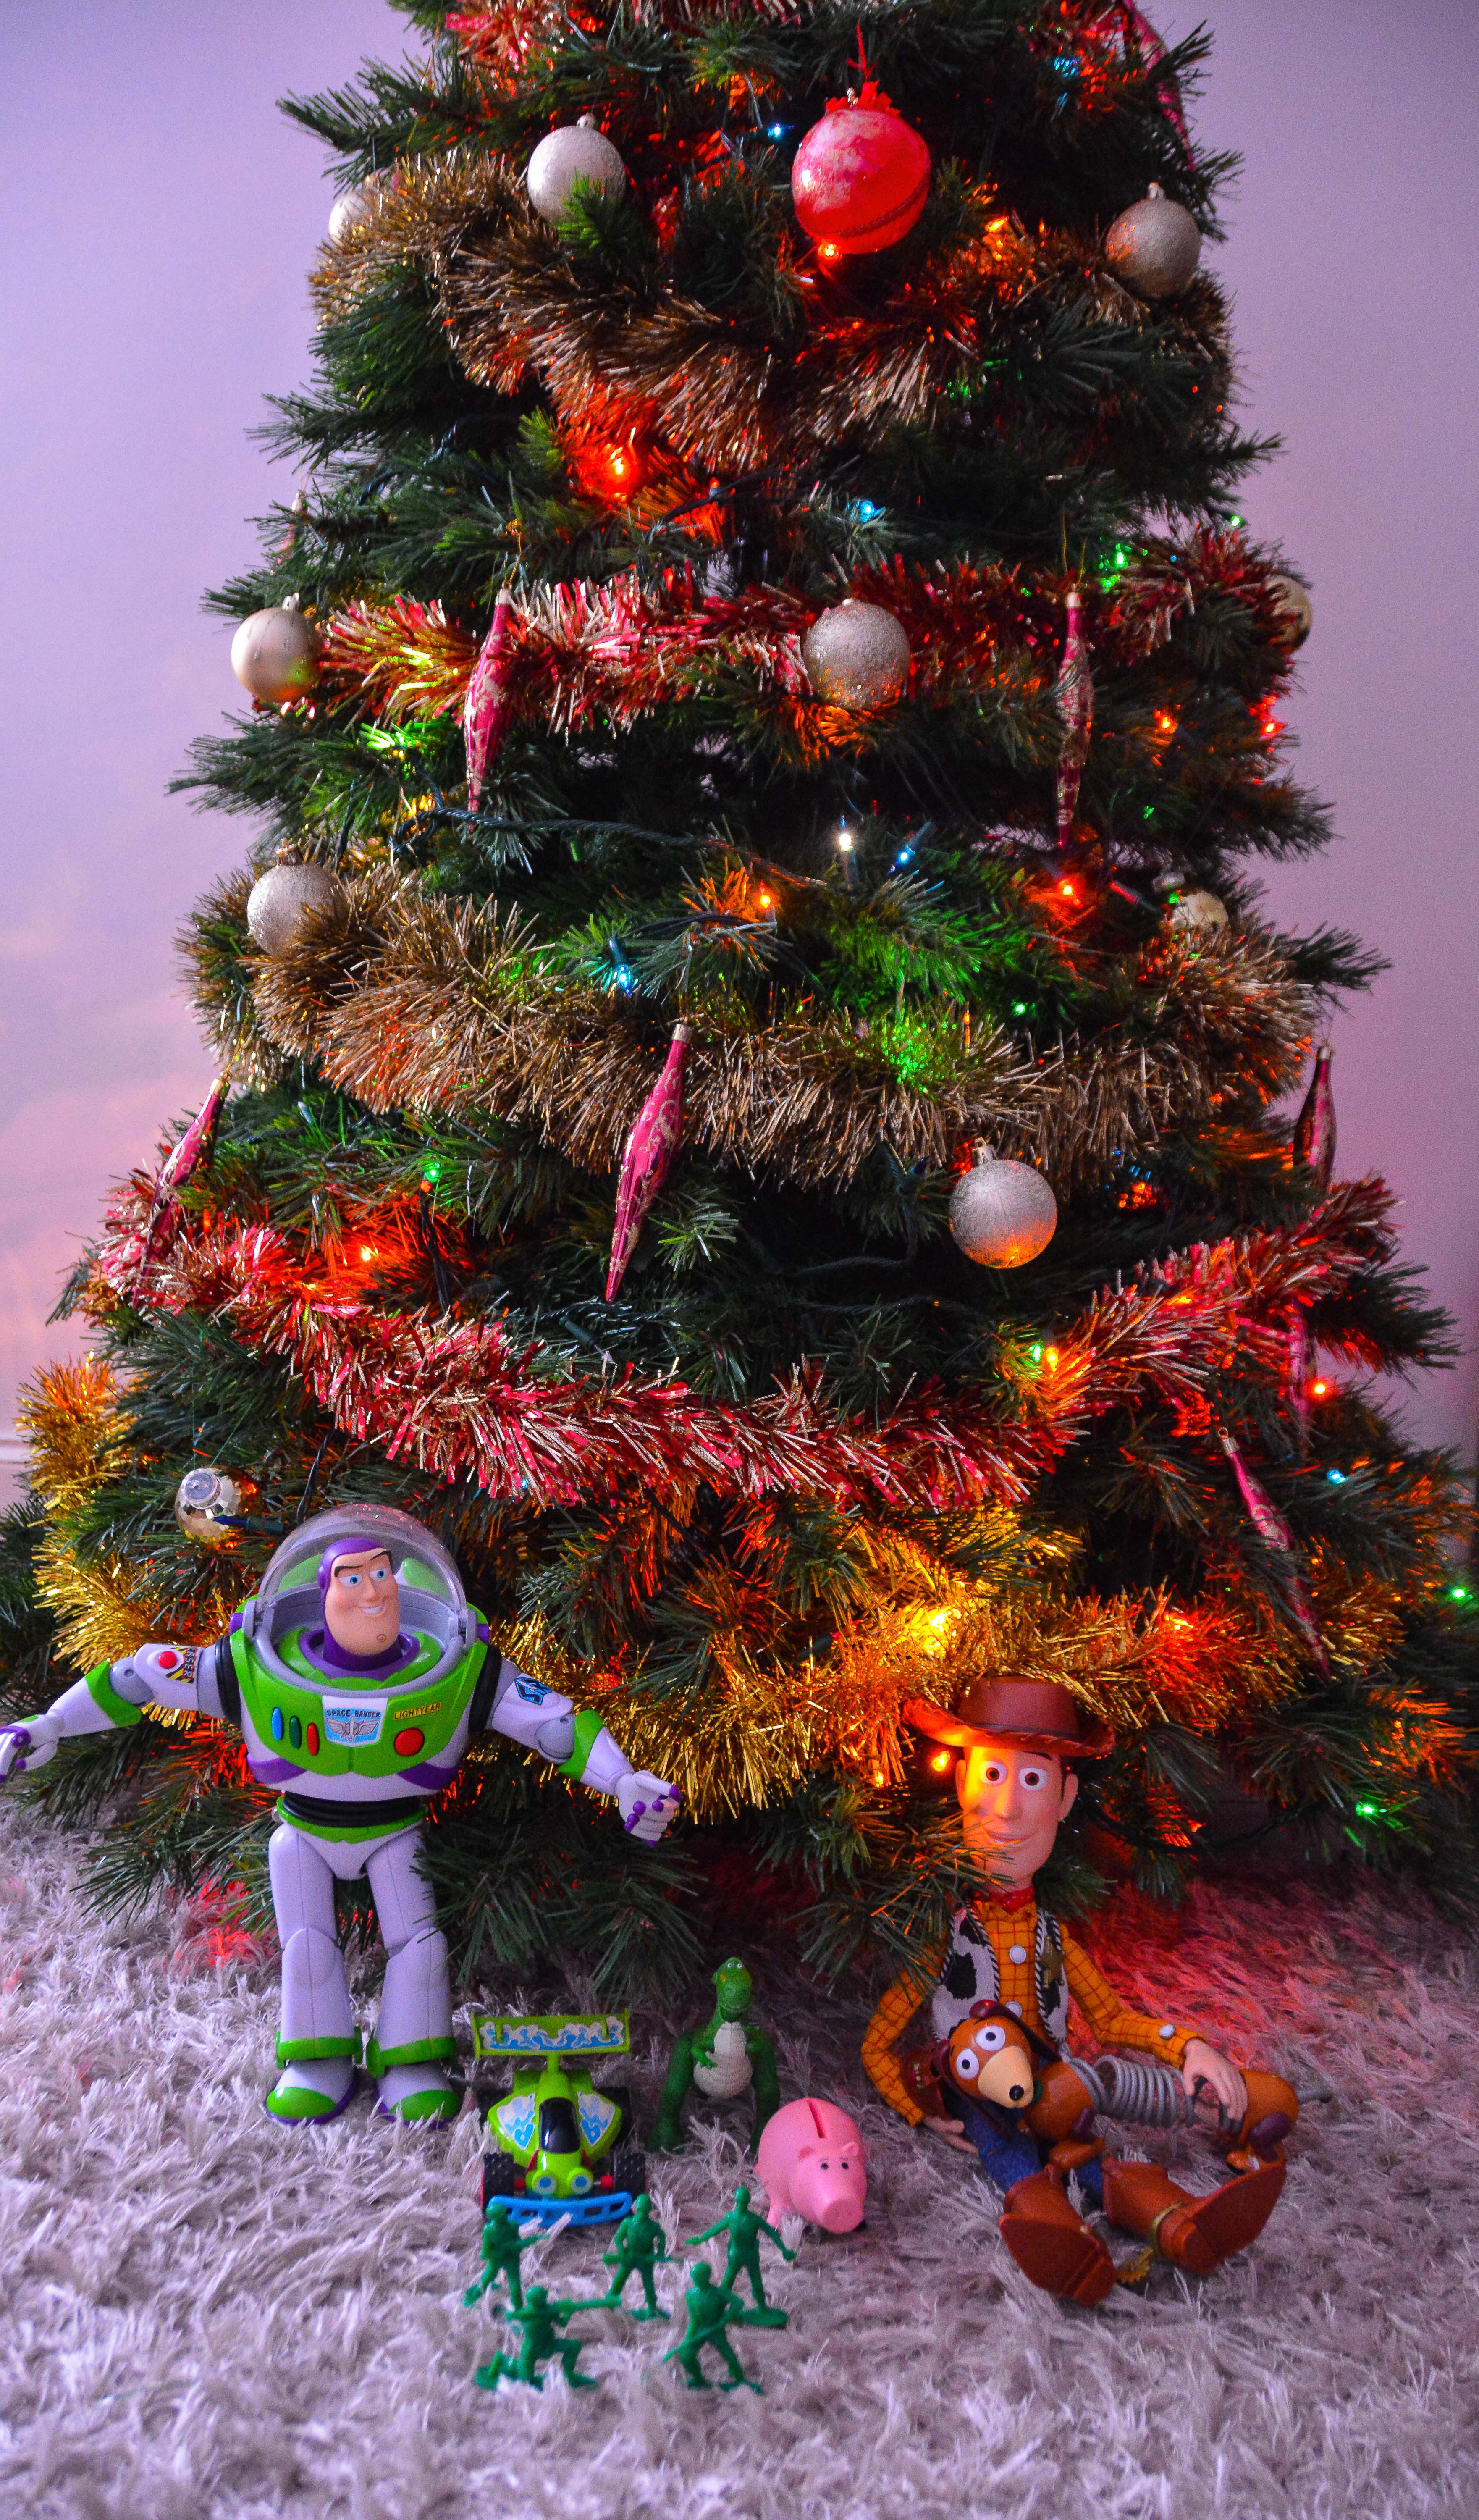 Toy Story Characters Put Up A Christmas Tree - Gallery ...